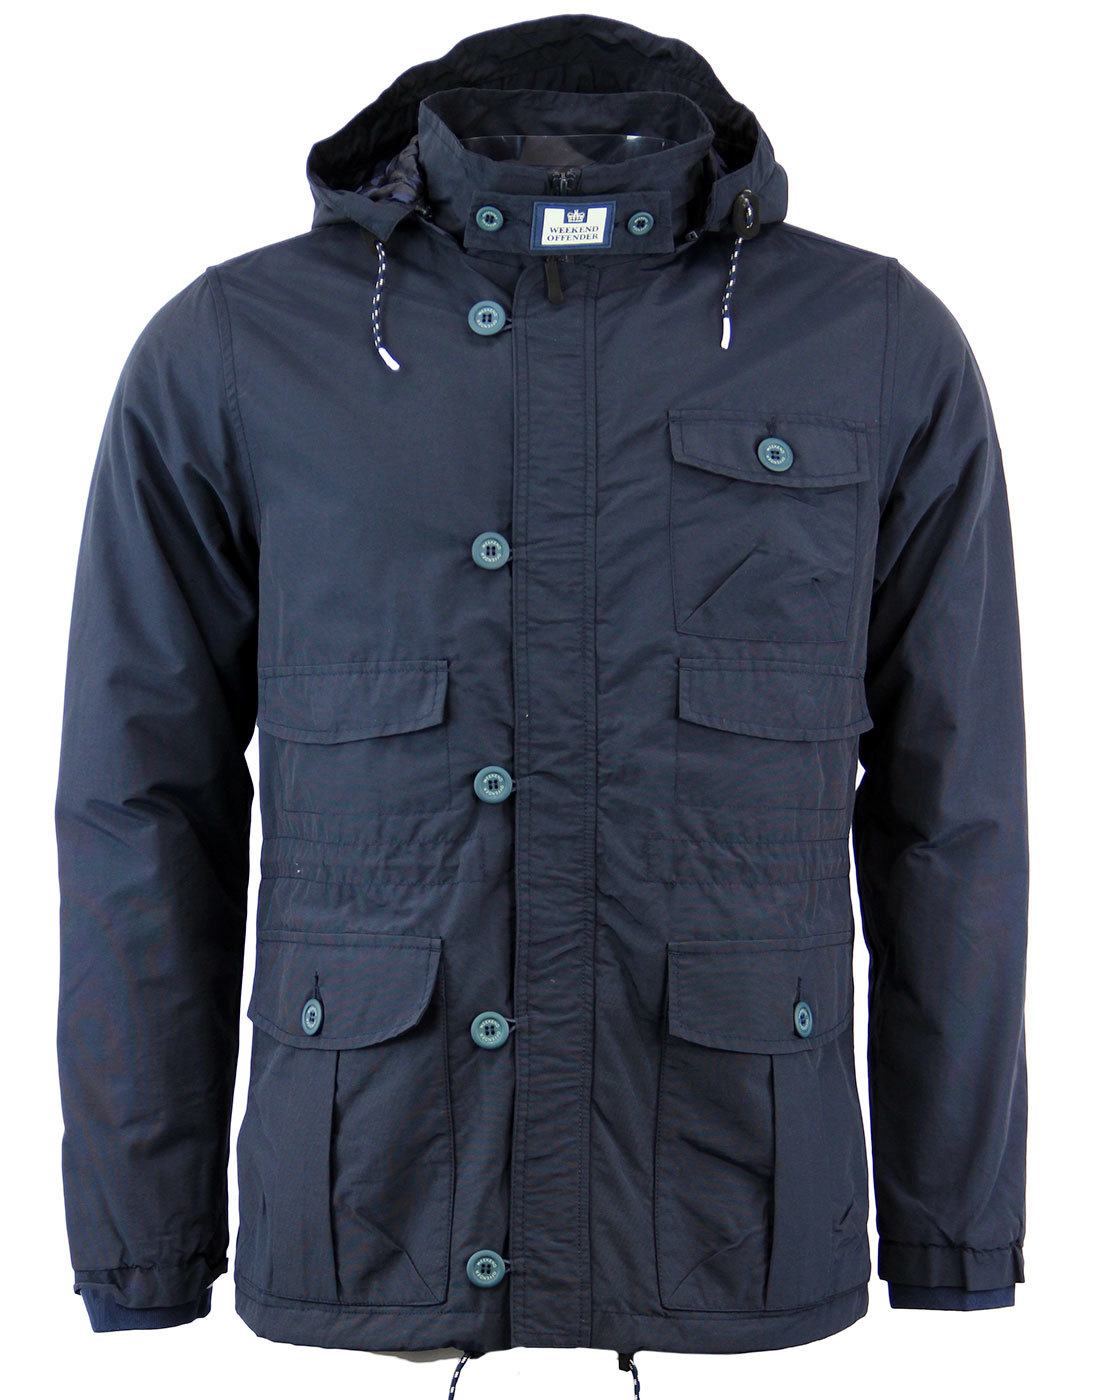 Blyth WEEKEND OFFENDER Retro Terrace Field Jacket